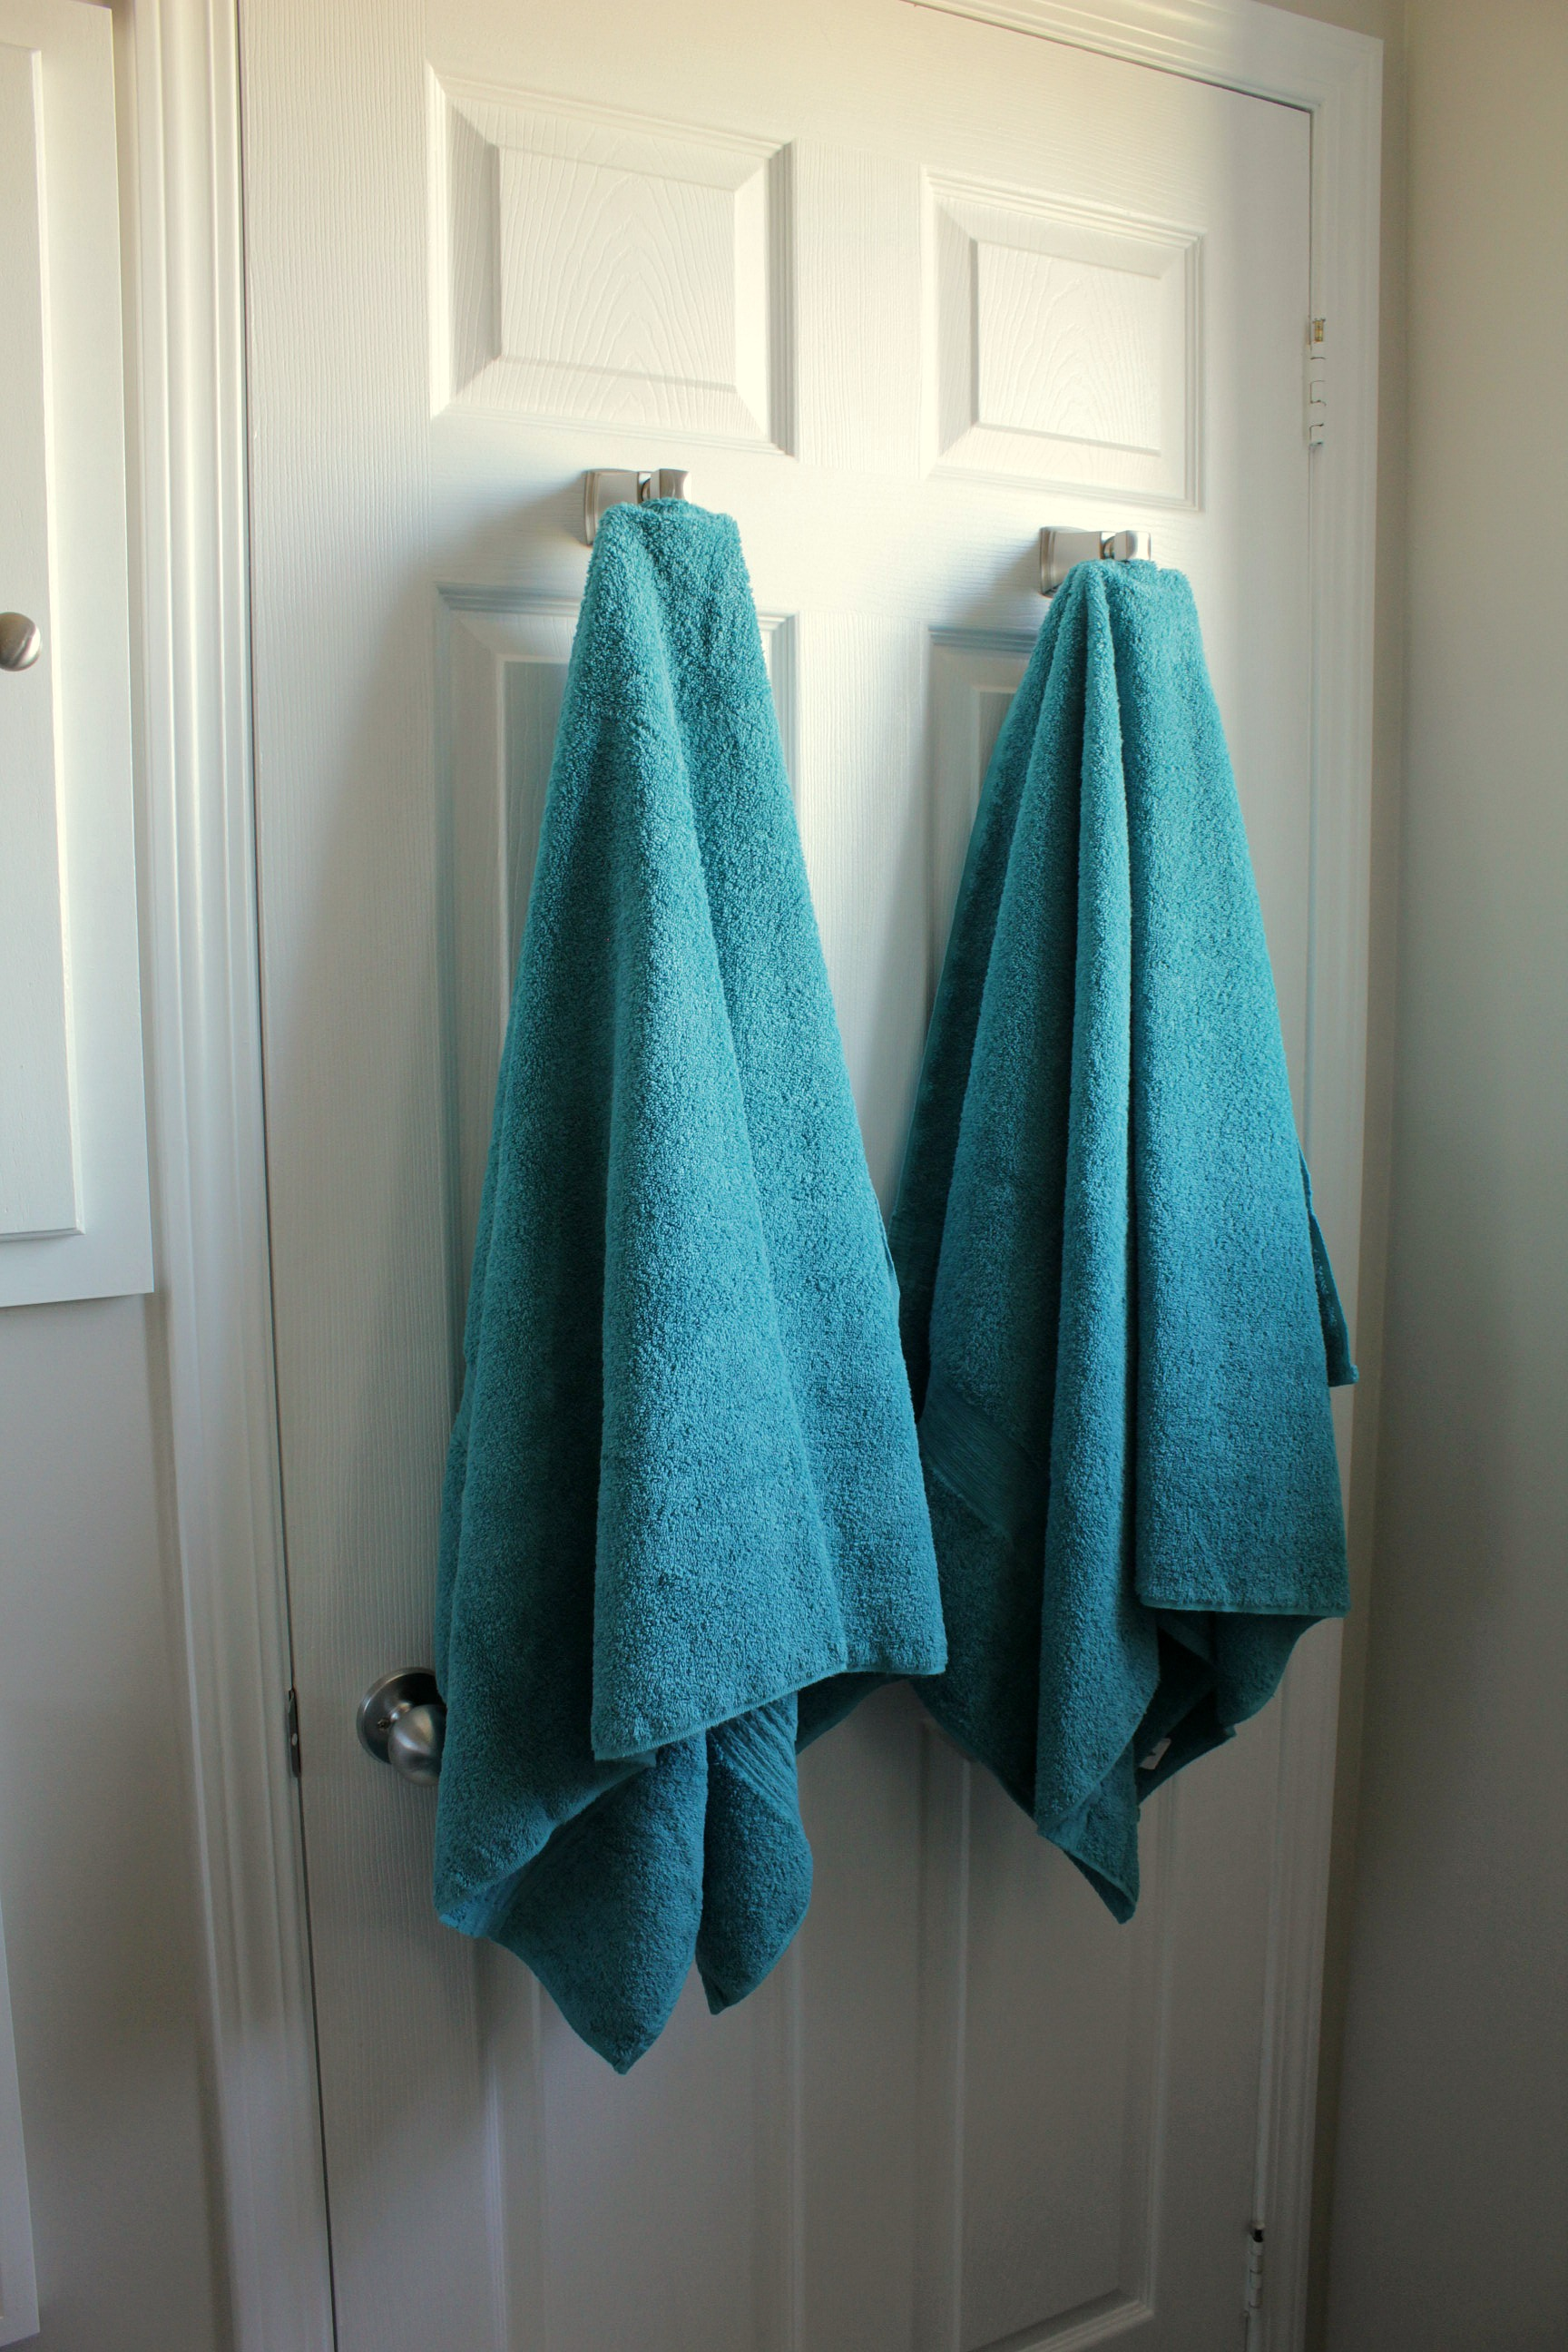 Displaying bathroom towels ideas - Ensuite Bathroom Renovation Teal Towels Brushed Nickel Towel Hooks